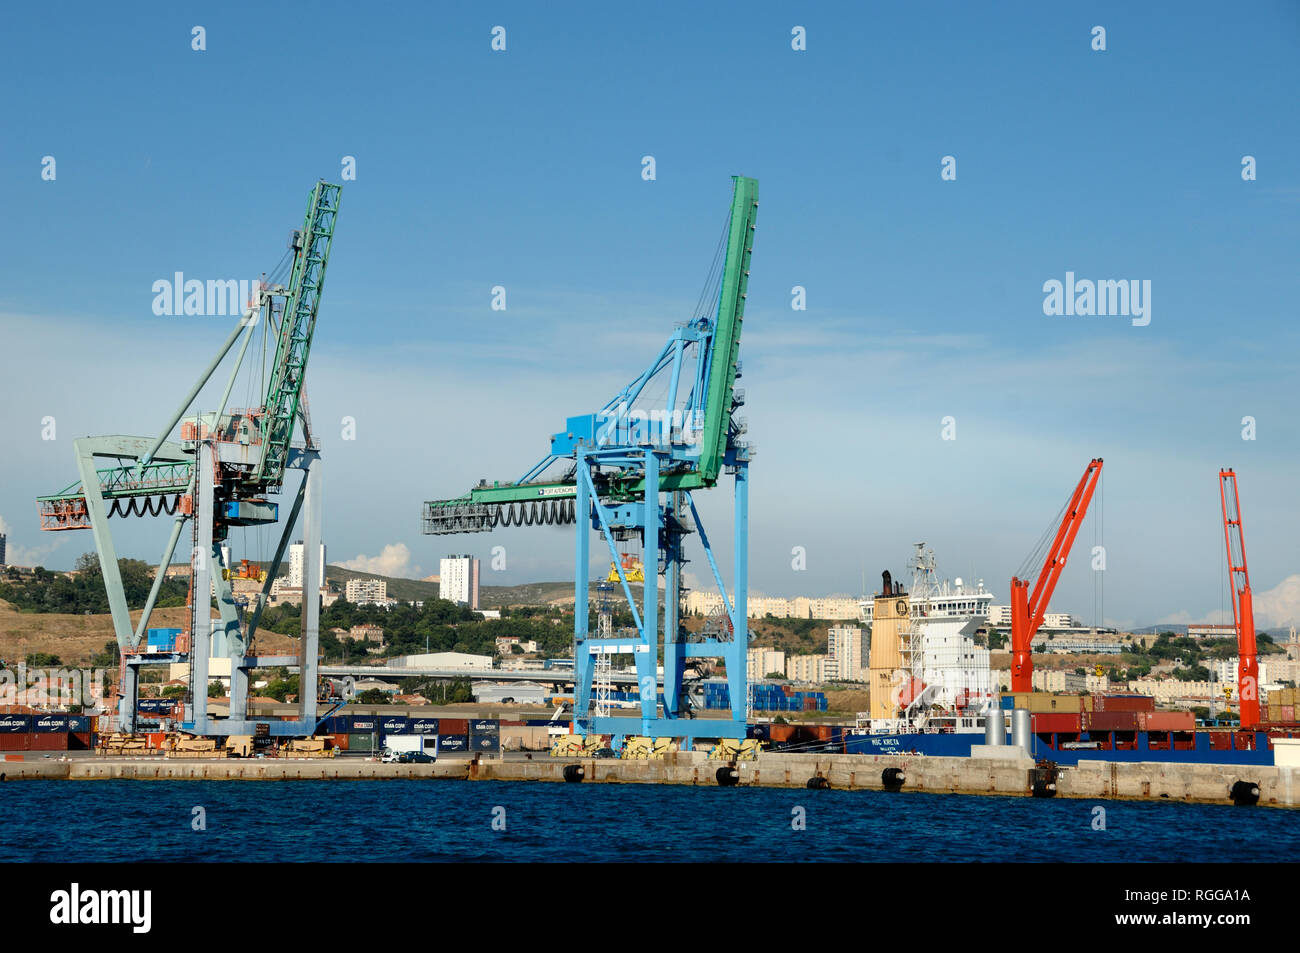 Cranes and Shipping Containers in Container Port or Docks Marseille France Stock Photo